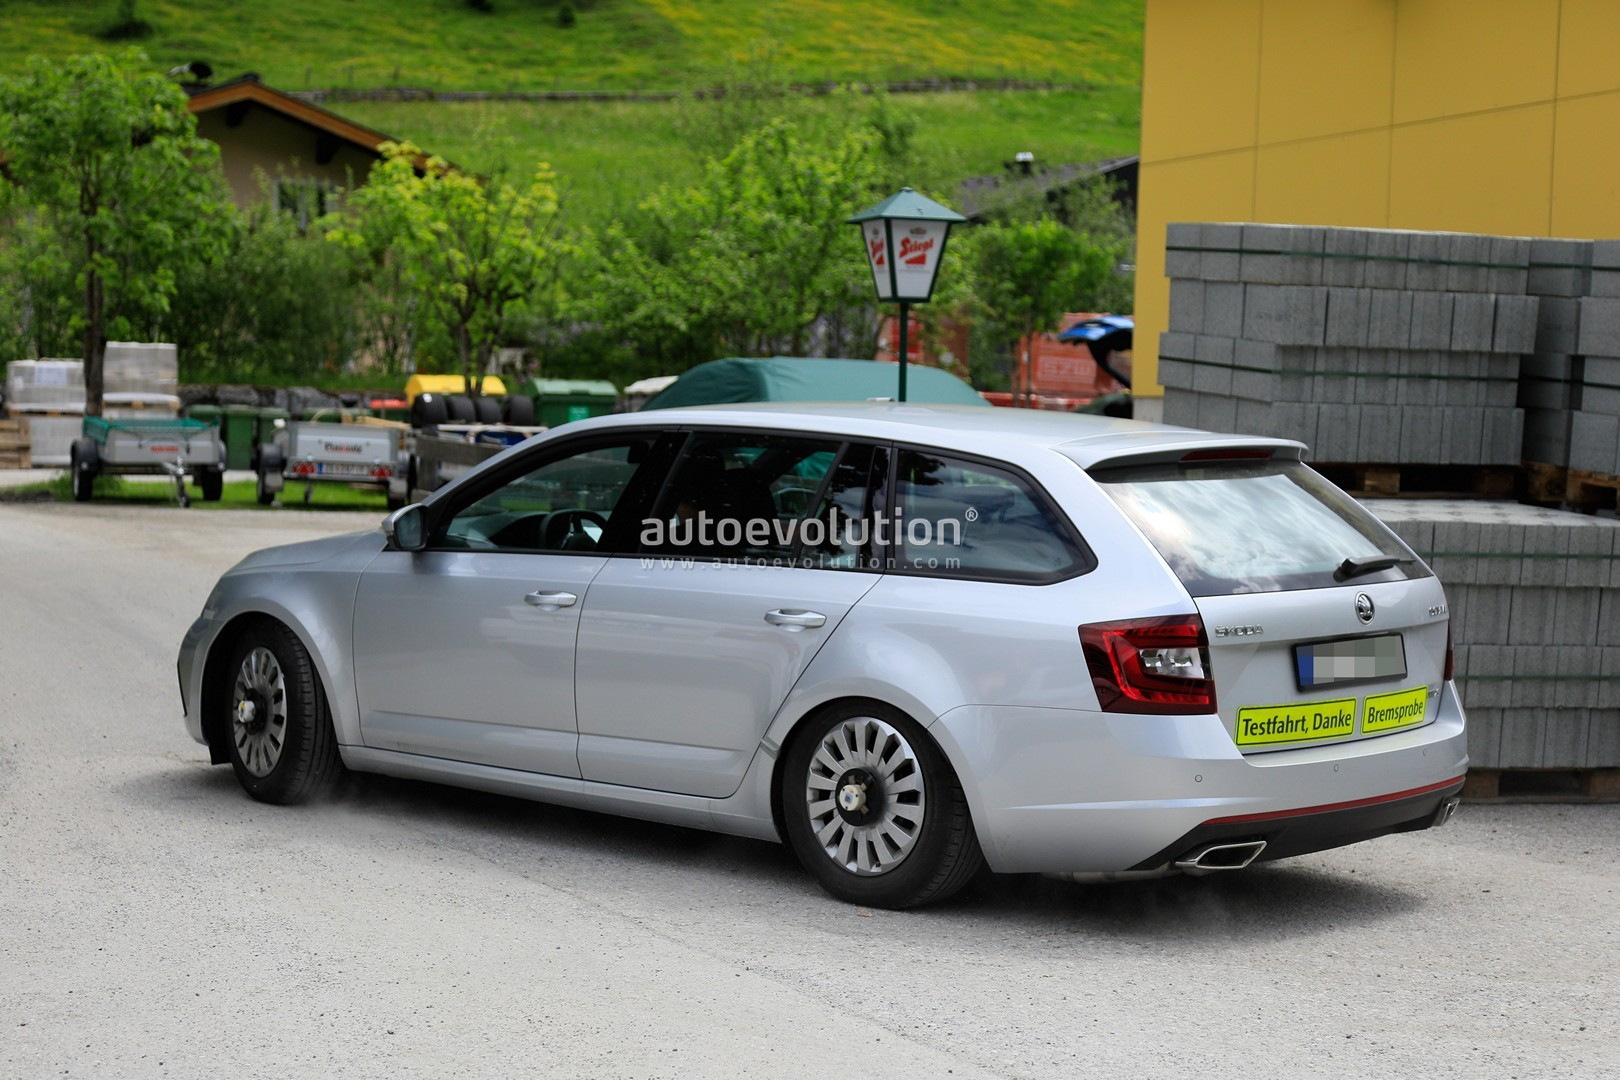 Skoda Octavia Goes From London To The Nurburgring And Back On One